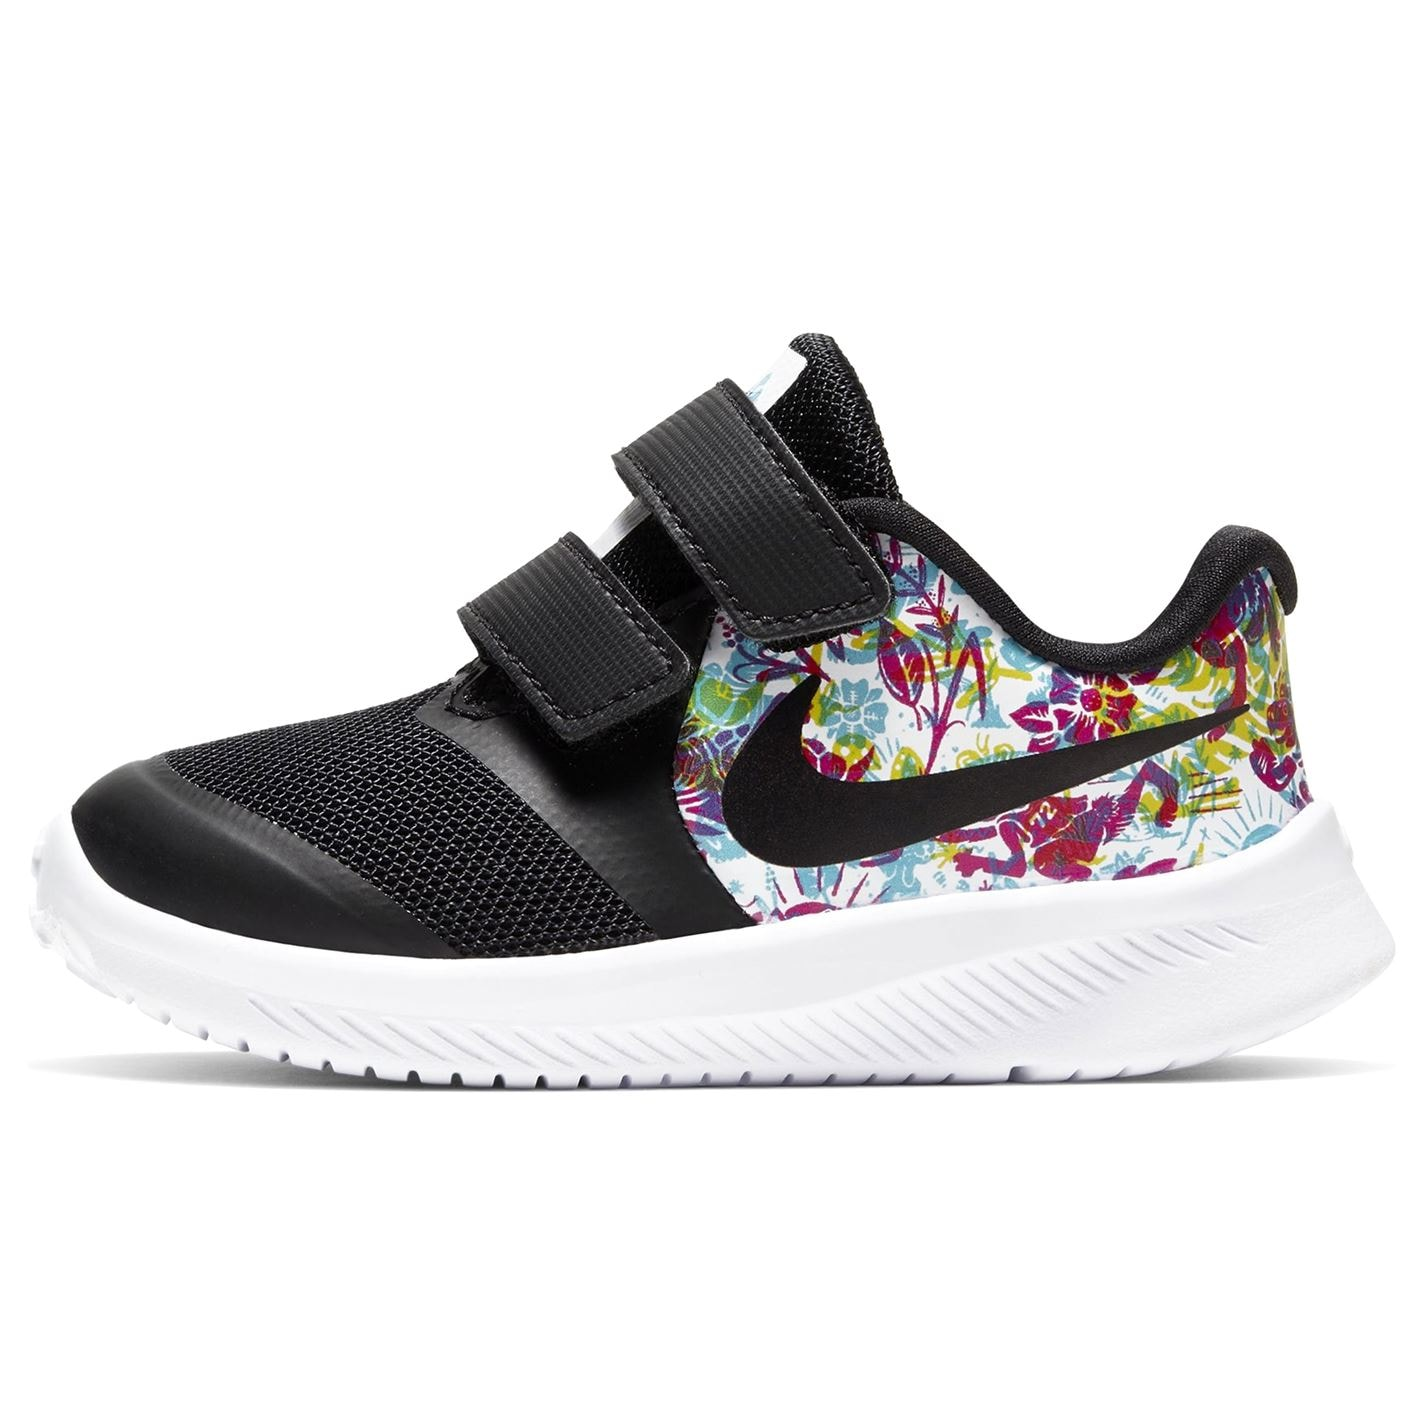 Nike Star Run Fable Trainers Infant Girls Black/Flowers